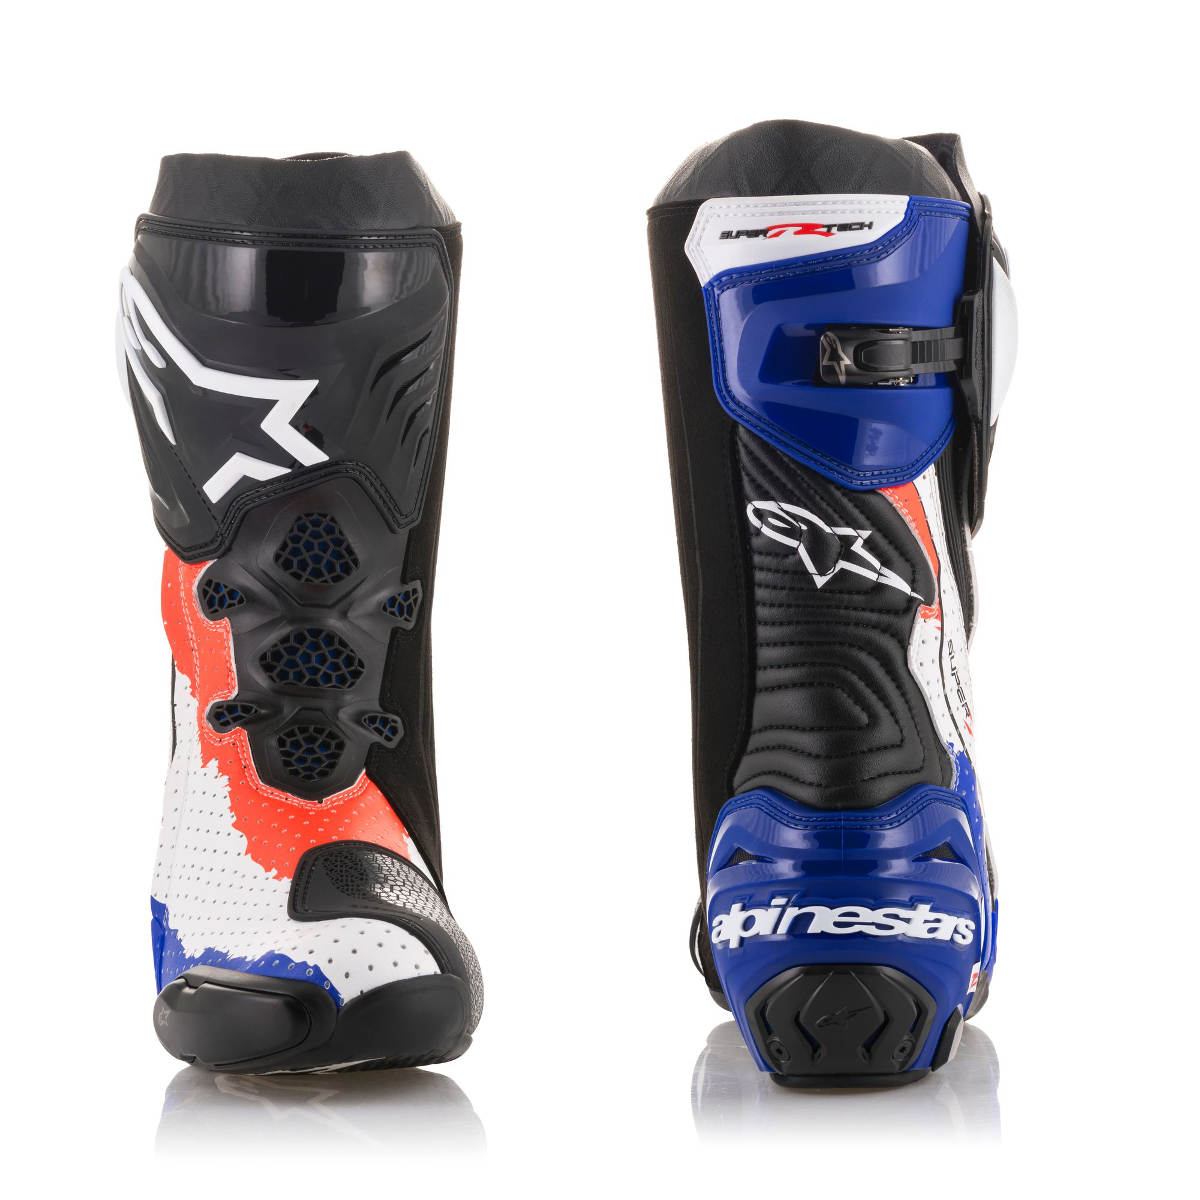 2018 Limited Edition Mick Doohan Alpinestars Supertech R Race Replica Boots Front and Back